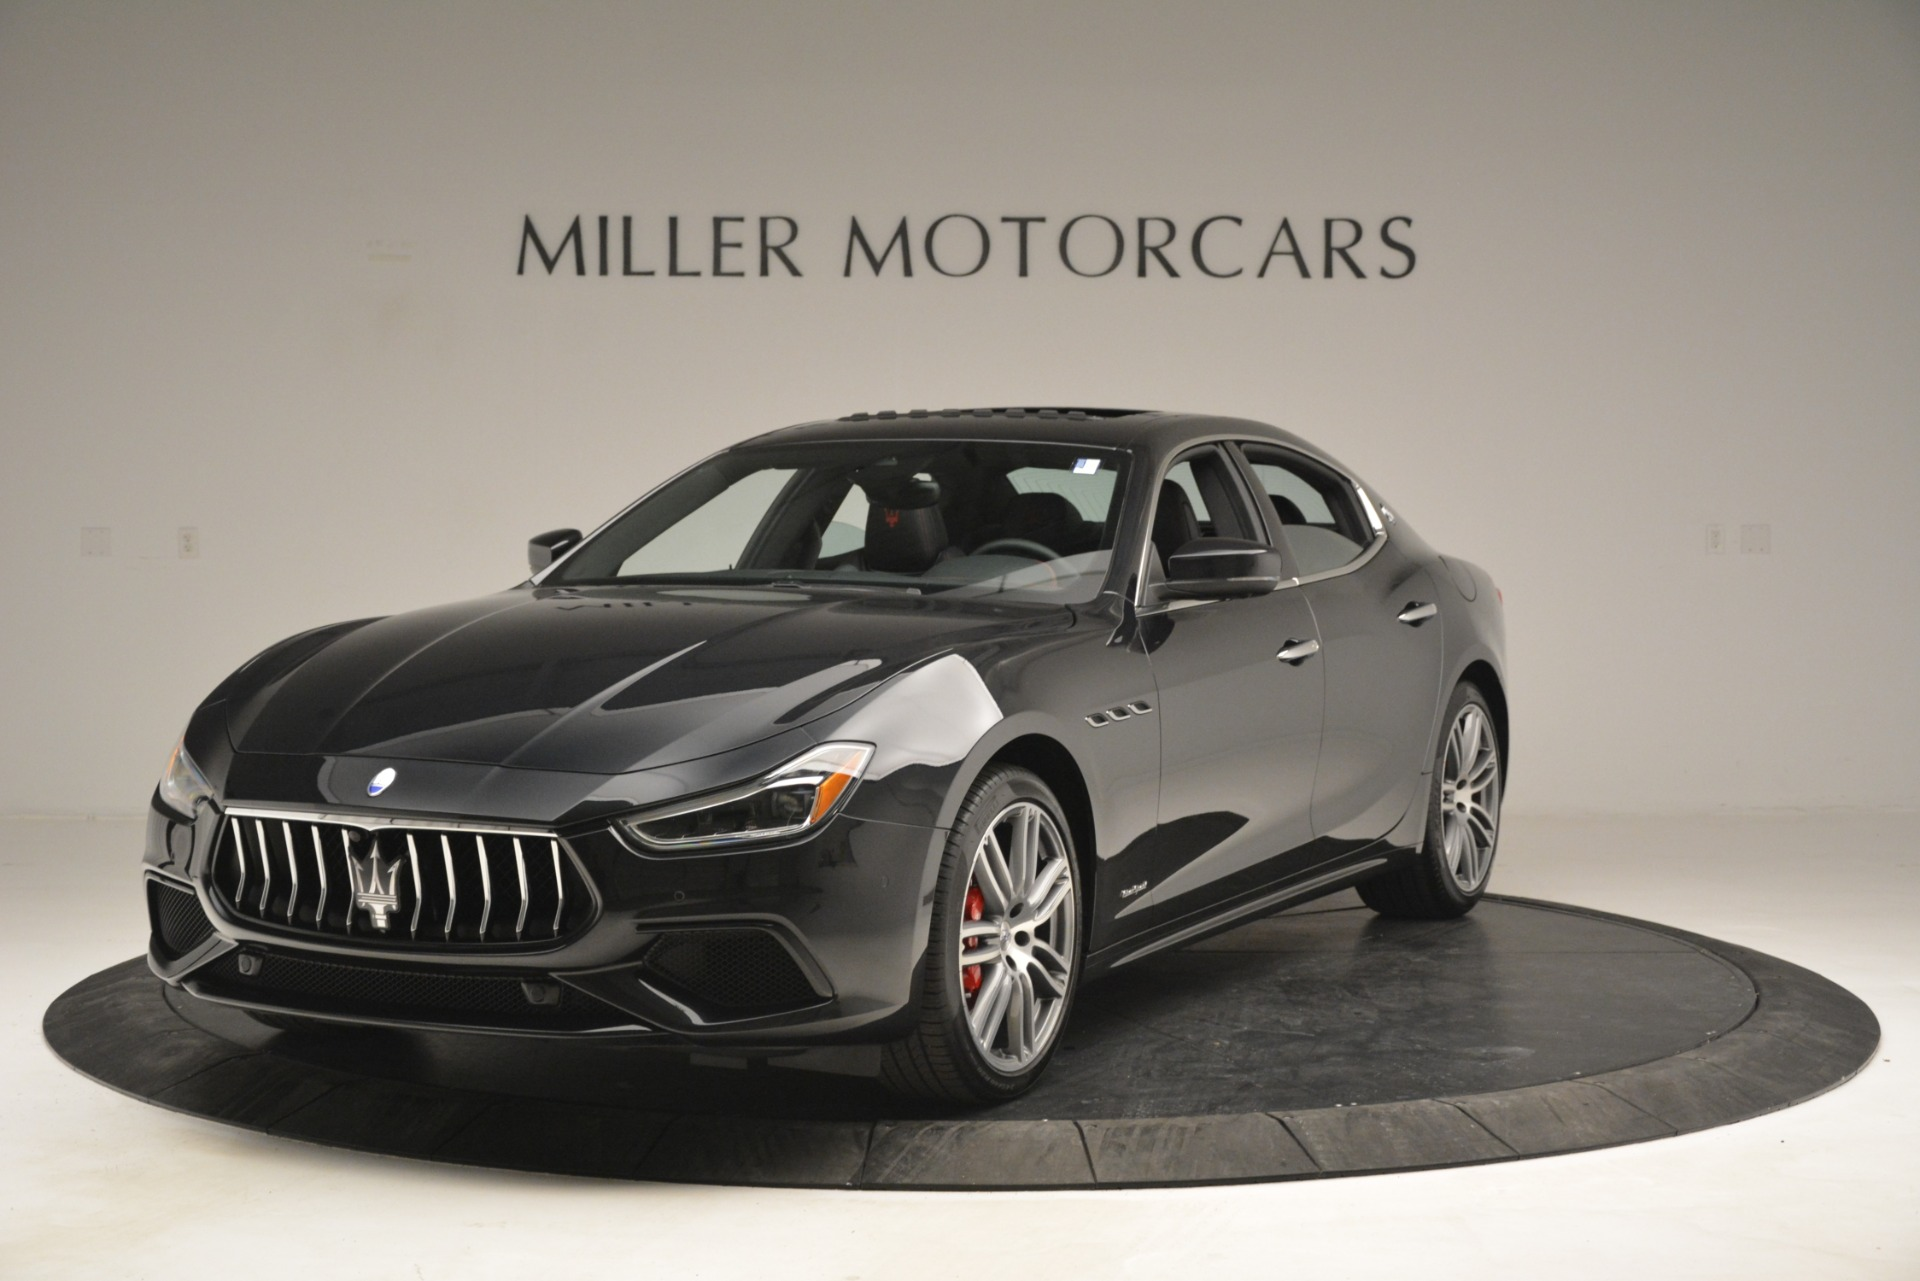 New 2019 Maserati Ghibli S Q4 GranSport For Sale In Westport, CT 2614_main